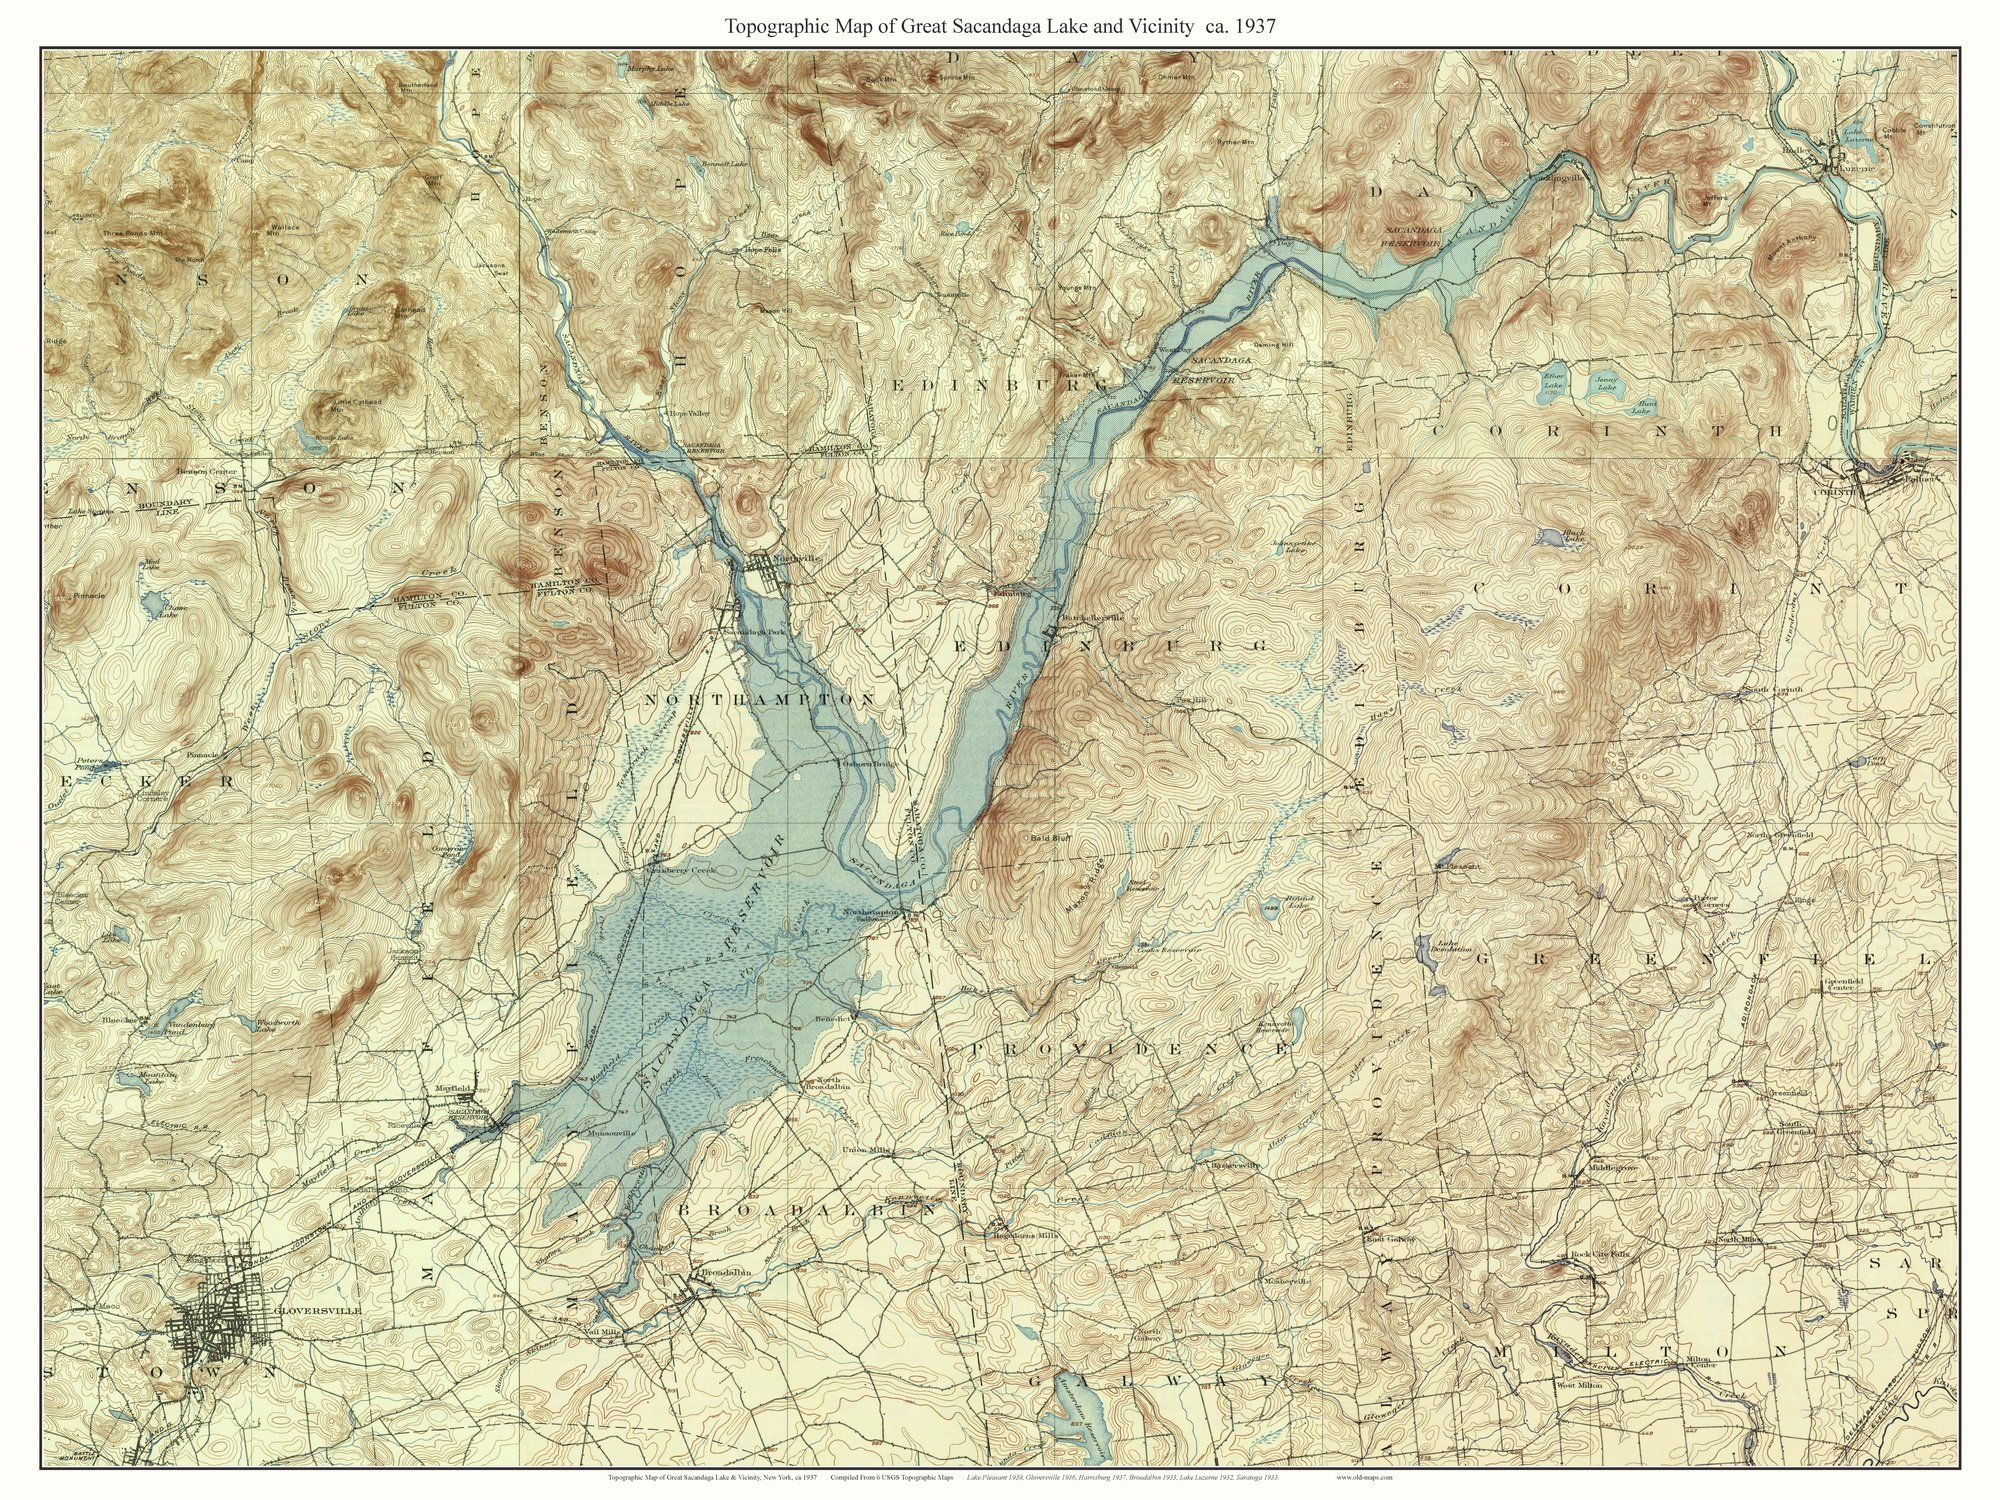 Great Sacandaga Lake And Vicinity  USGS Topographic Map - Nyc map topographic